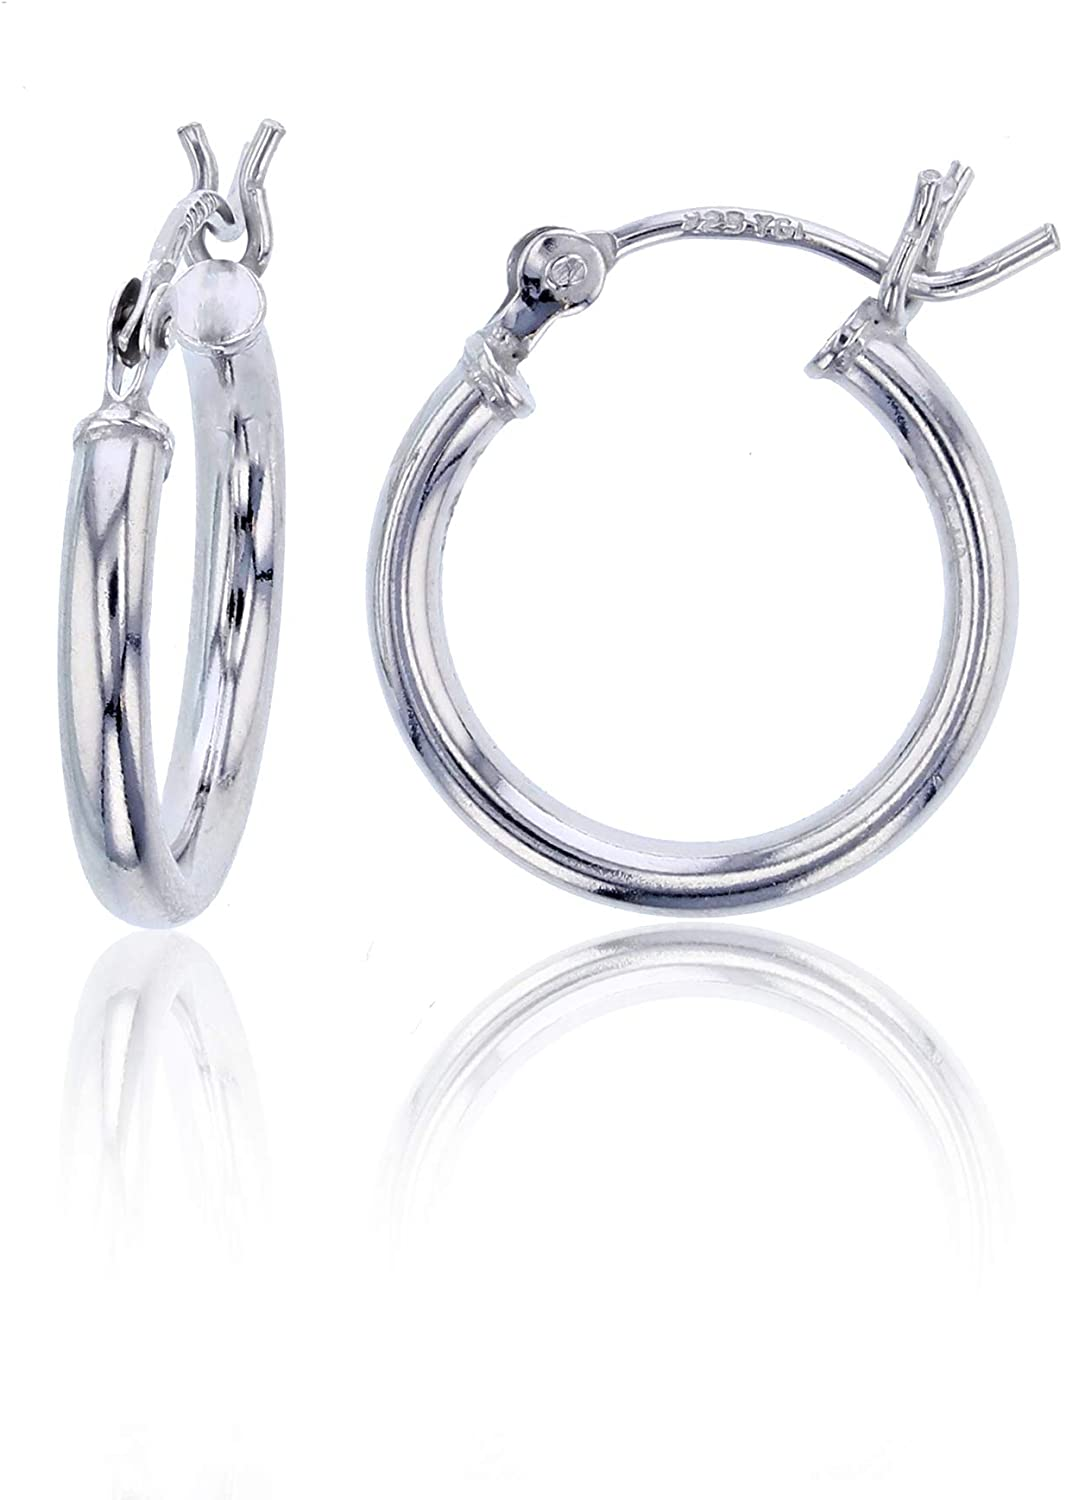 14K Gold Plated 925 Sterling Silver High Polished Hoop Earrings for Women   1mm-4mm Thick Hoops   Secure Snap Bar Closure   Shiny Classic Earrings, 10mm-70mm